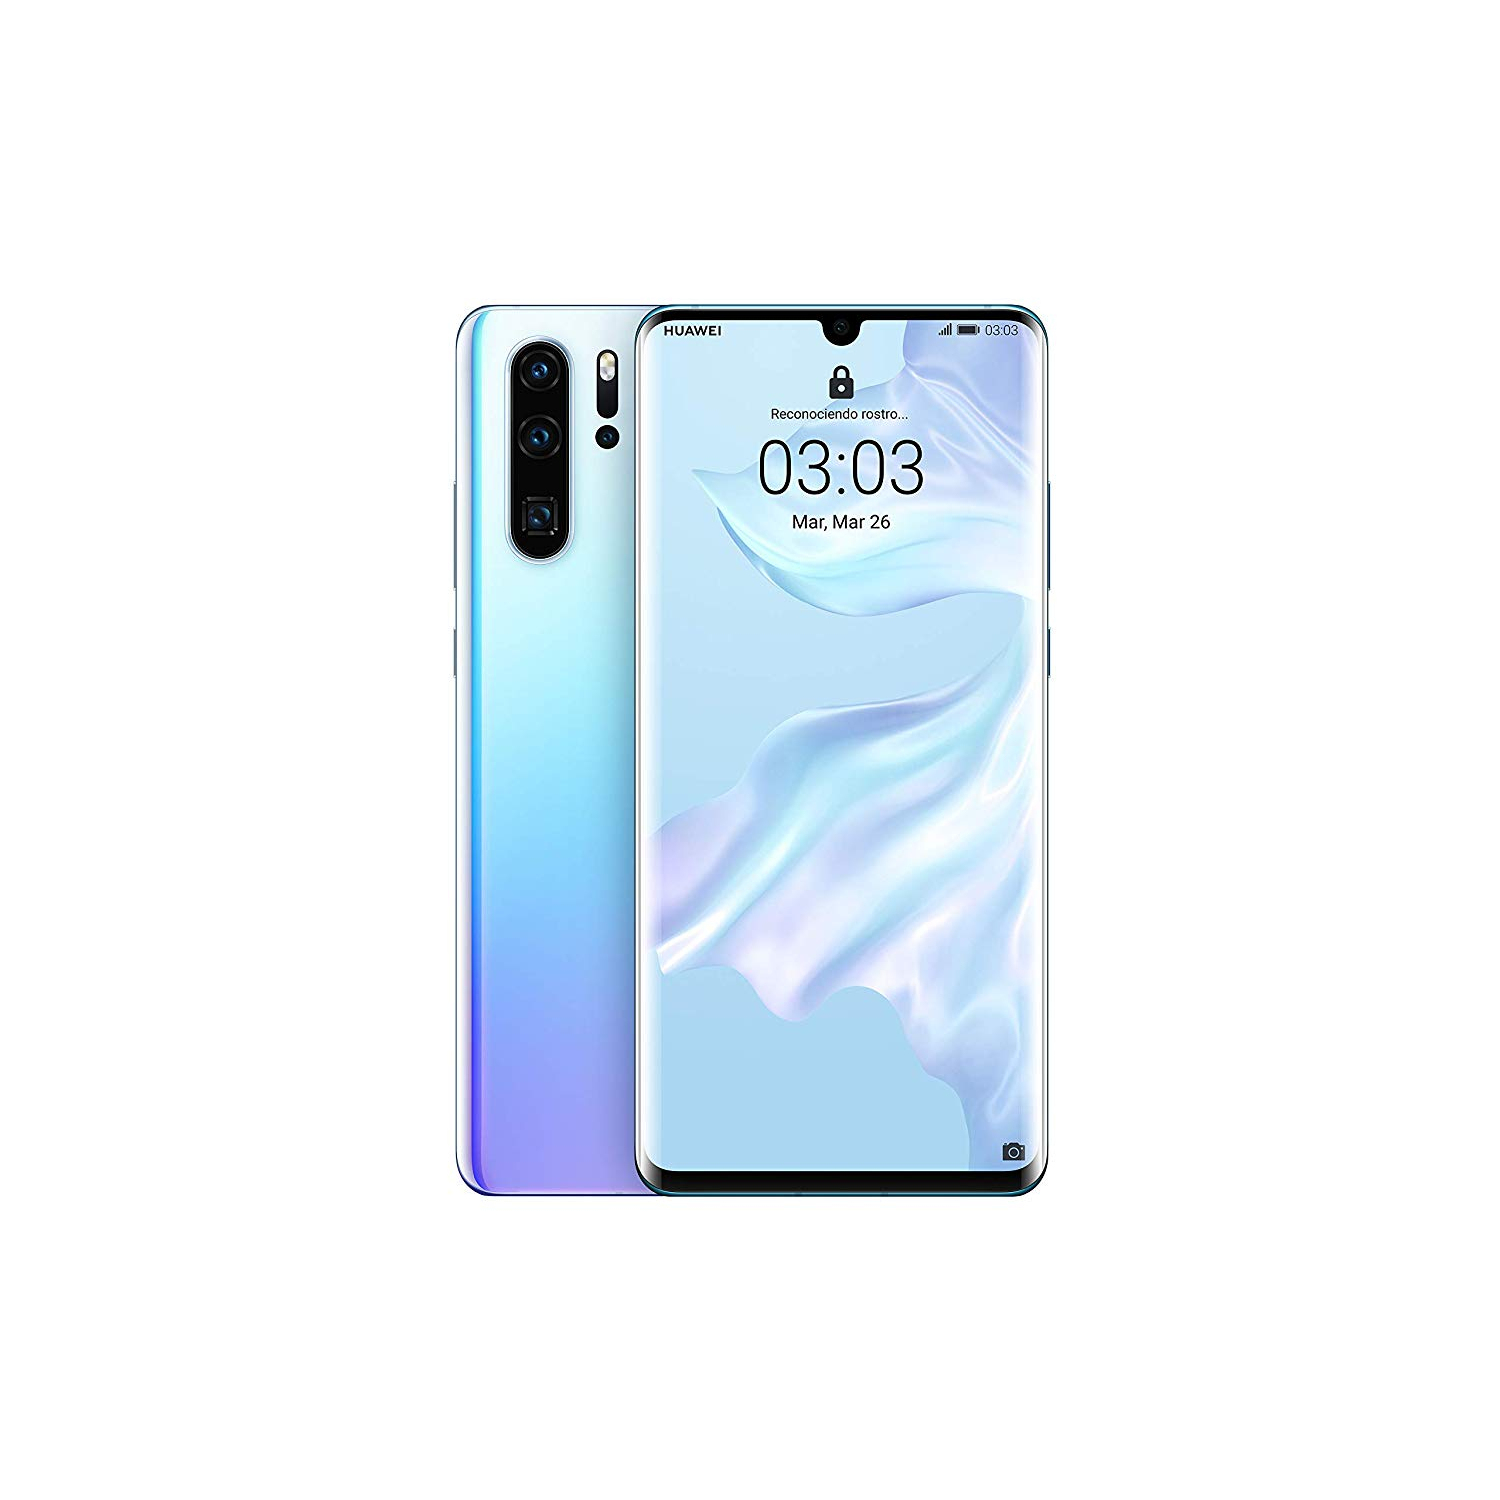 Huawei P30 Pro, Color Nacre (Breathing Crystal), Dual SIM, 12 8GB Memoria Internal, 8GB RAM, Screen 6.47